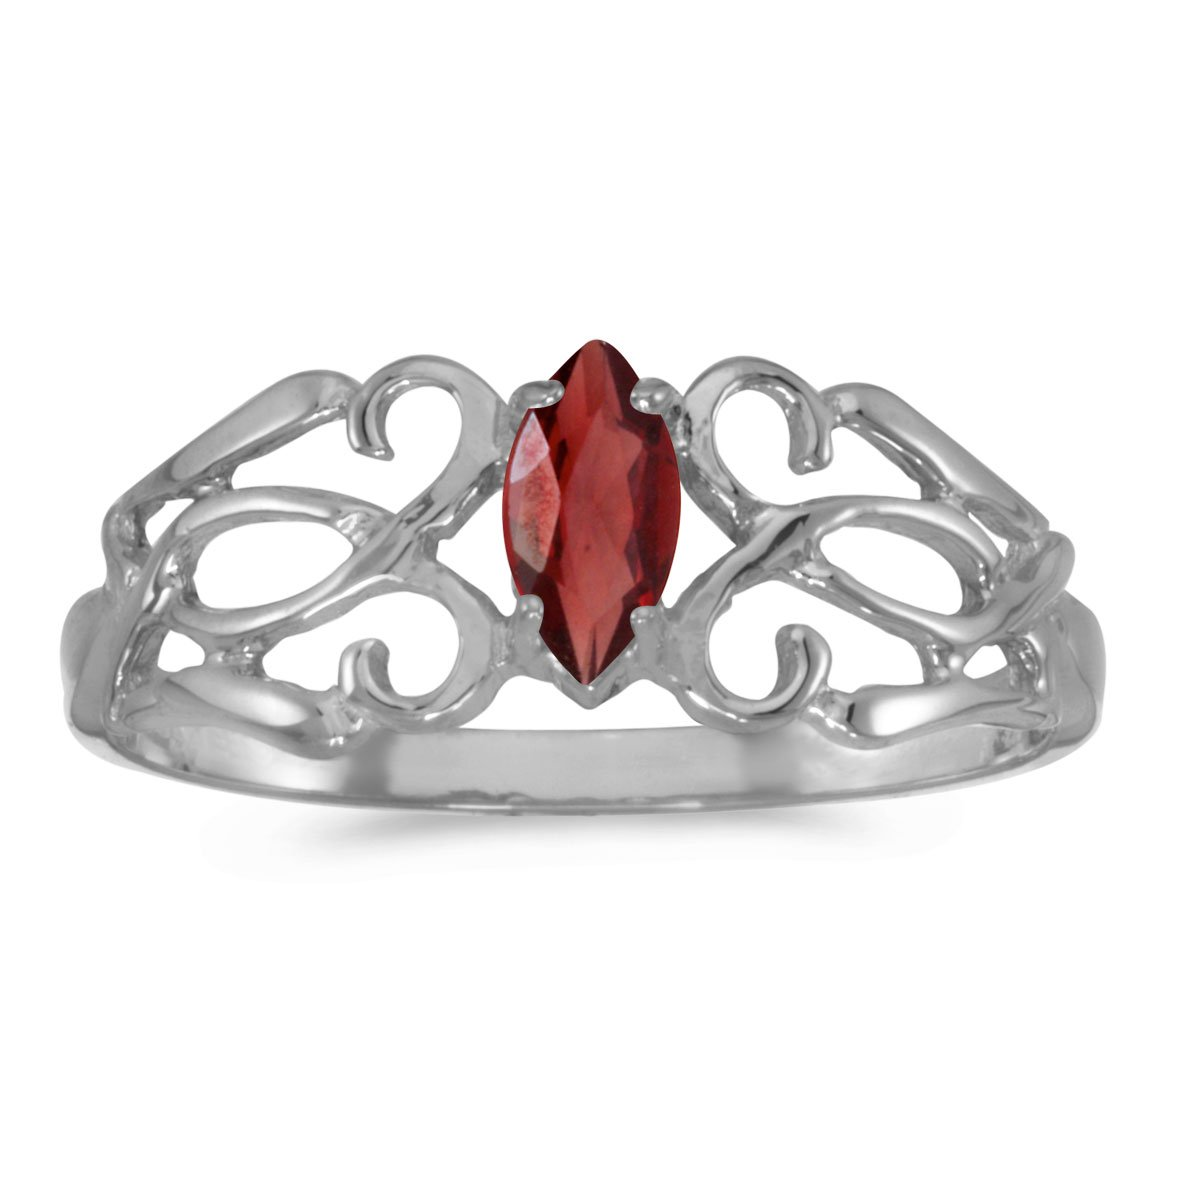 Jewels By Lux 14k White Gold Genuine Red Birthstone Solitaire Marquise Garnet Filagree Wedding Engagement Ring - Size 5.5 (1/4 Cttw.)